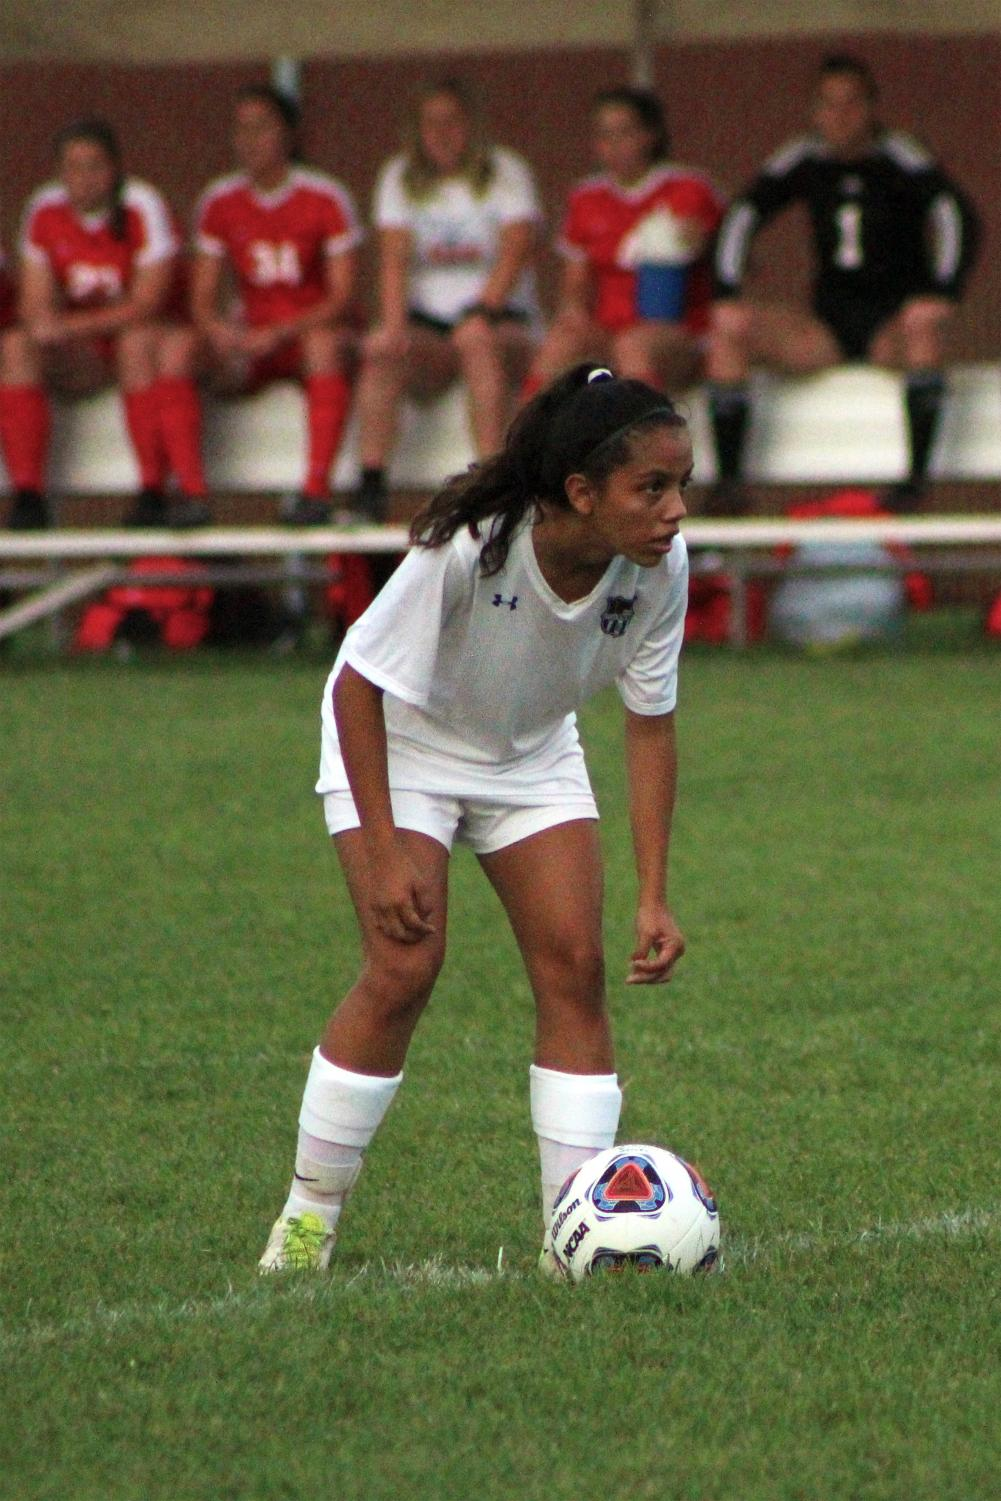 """Joanna Lomeli (10) observes her surroundings. Lomeli has played soccer for around 10 years and has worked hard to obtain a position on the Varsity team."""" Photo by Brian Scott (11)."""